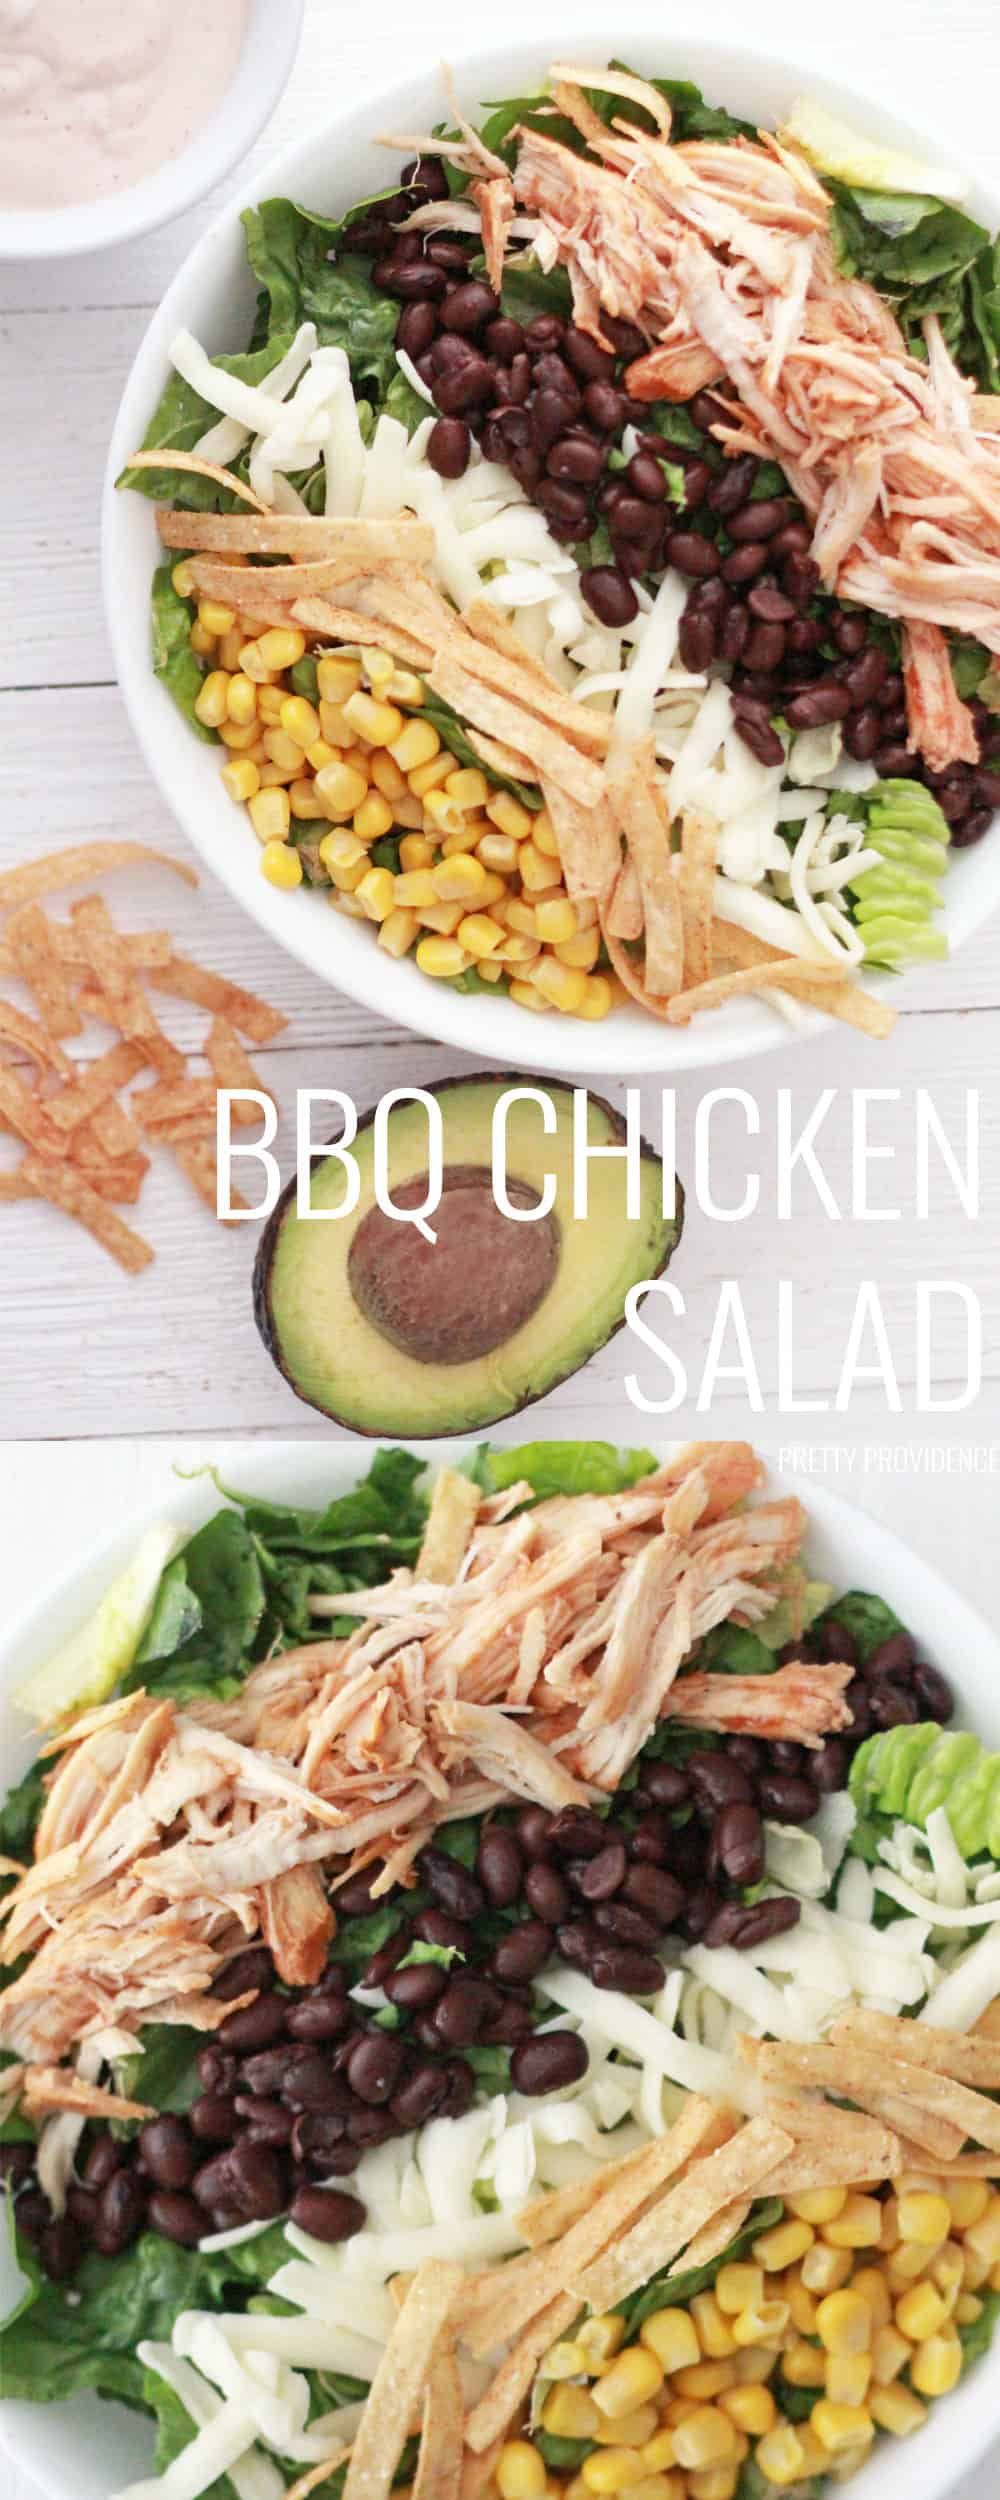 You will love this BBQ Chicken Salad recipe! It's such an easy dinner idea that is both healthy and tastes amazing! Five stars!